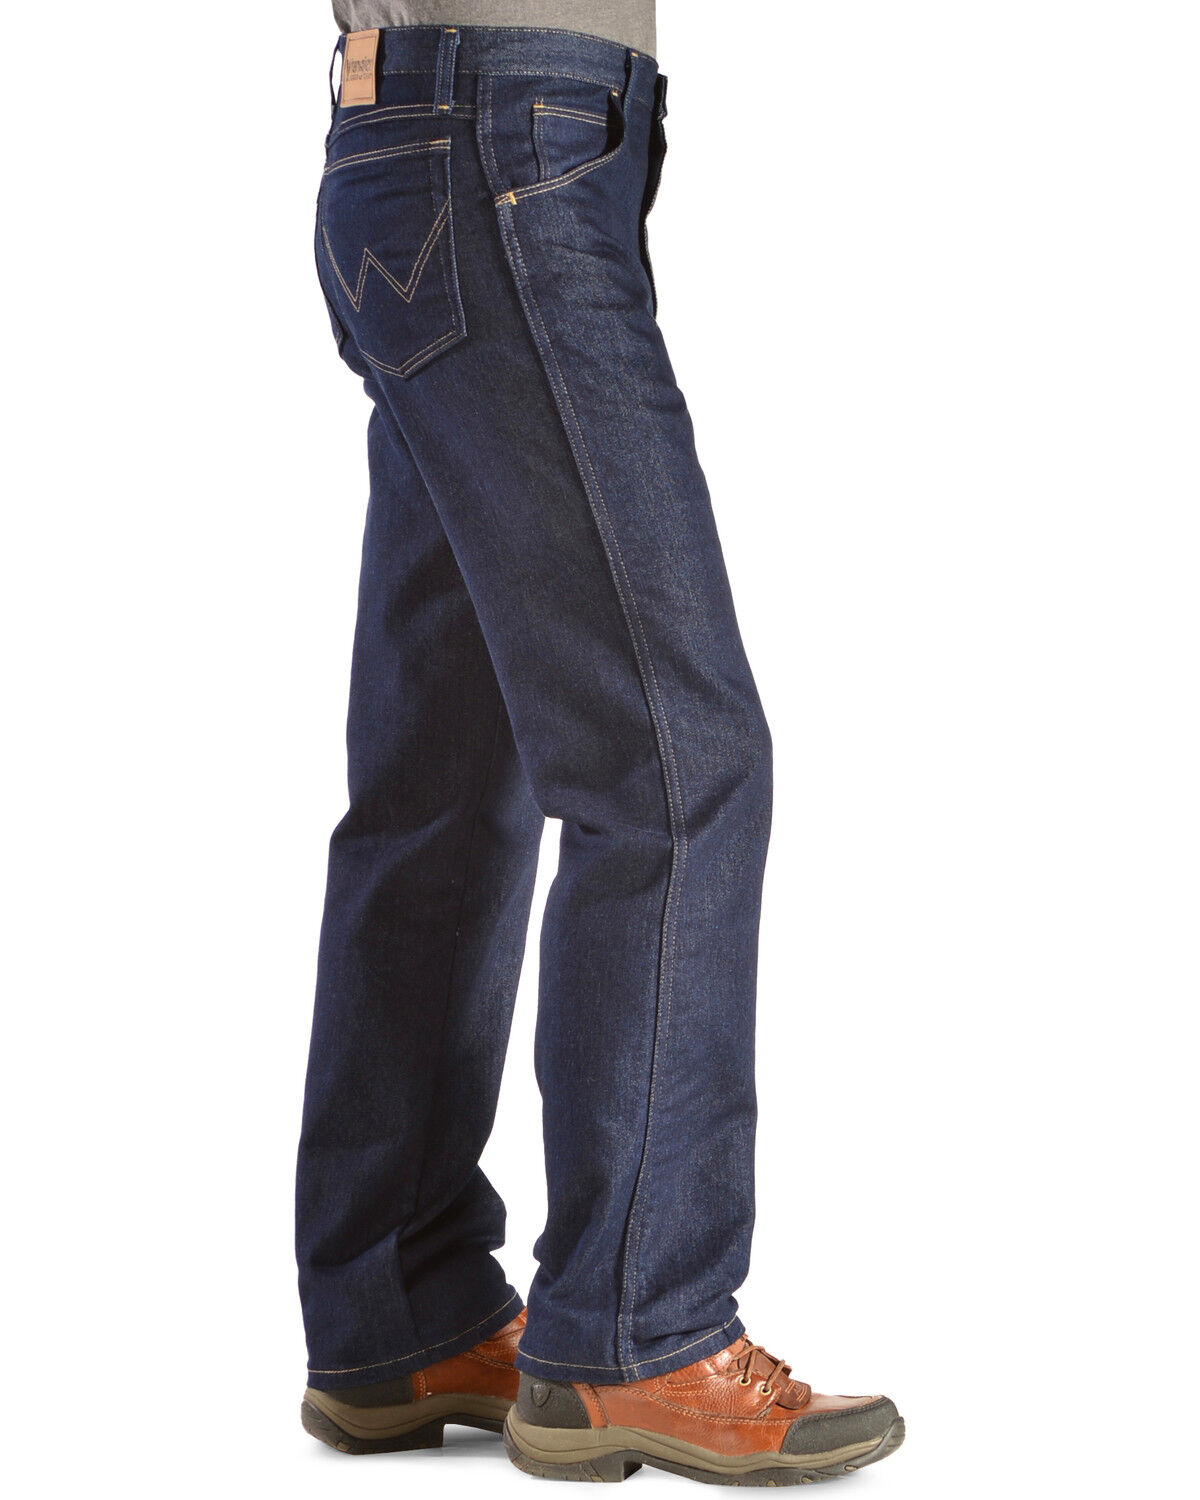 Wrangler Jeans   Rugged Wear Classic Fit Stretch, Indigo, Hi Res